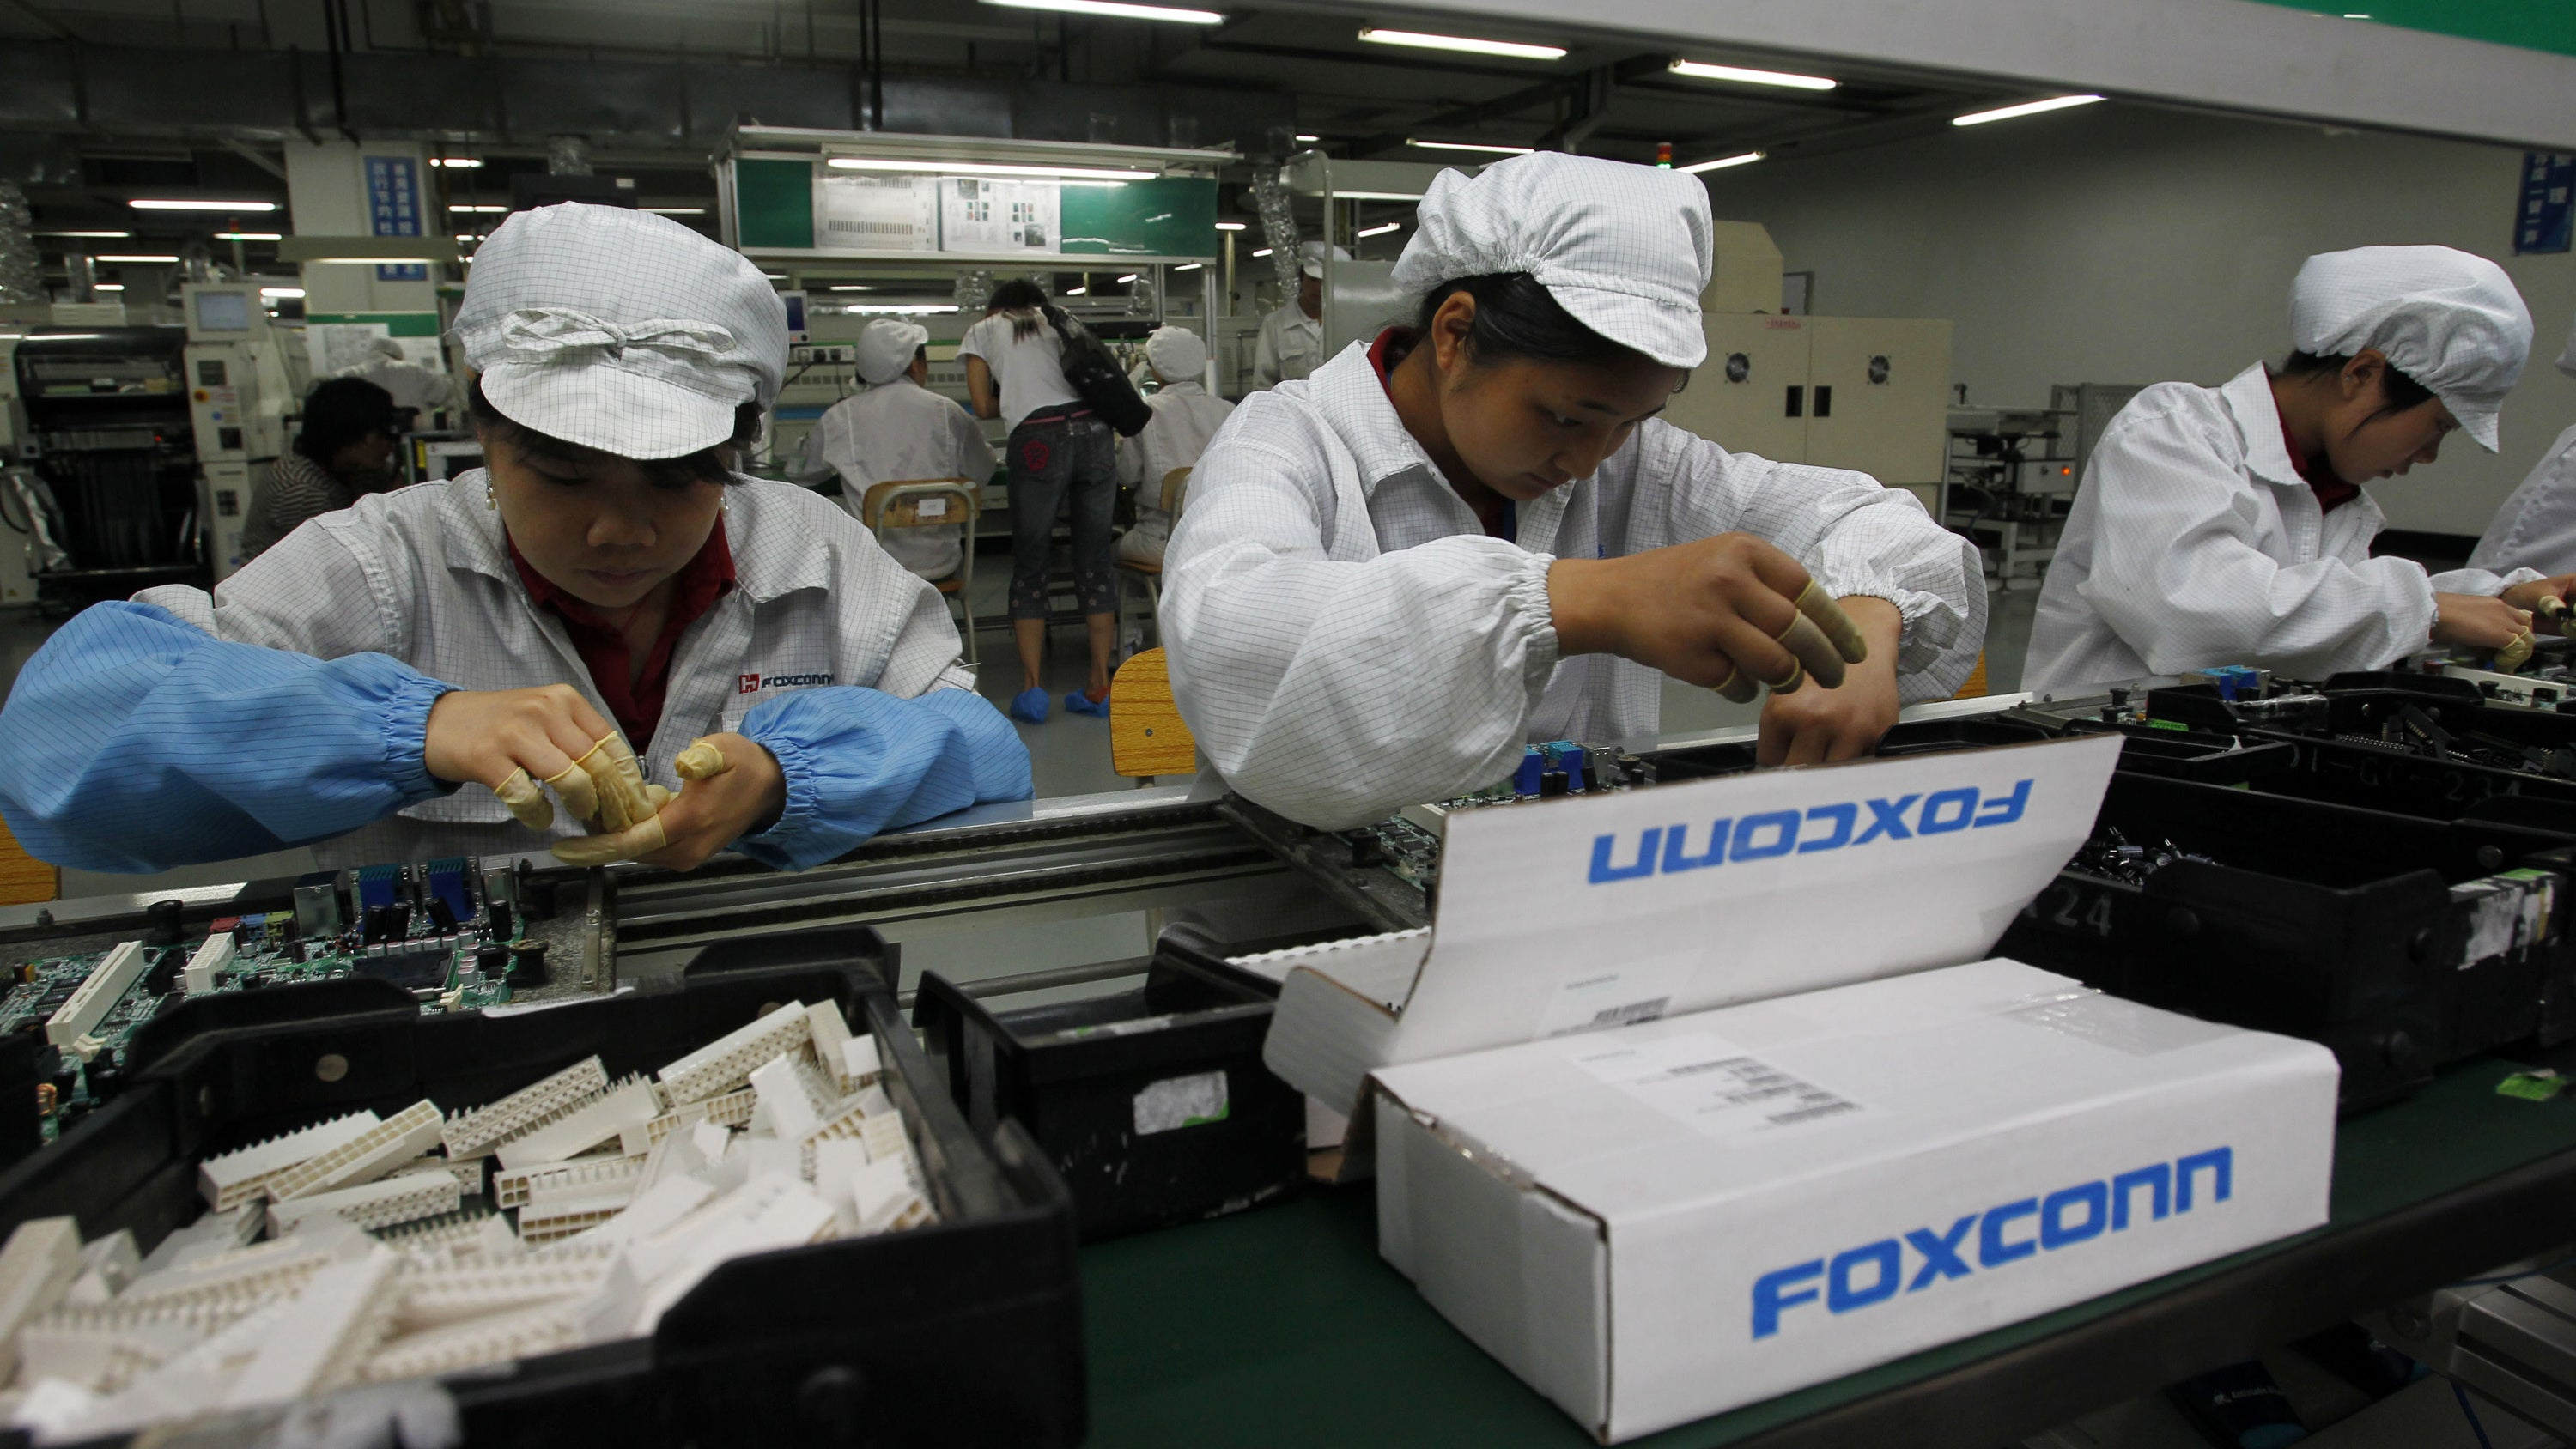 IPhone X supplier under fire over student labor